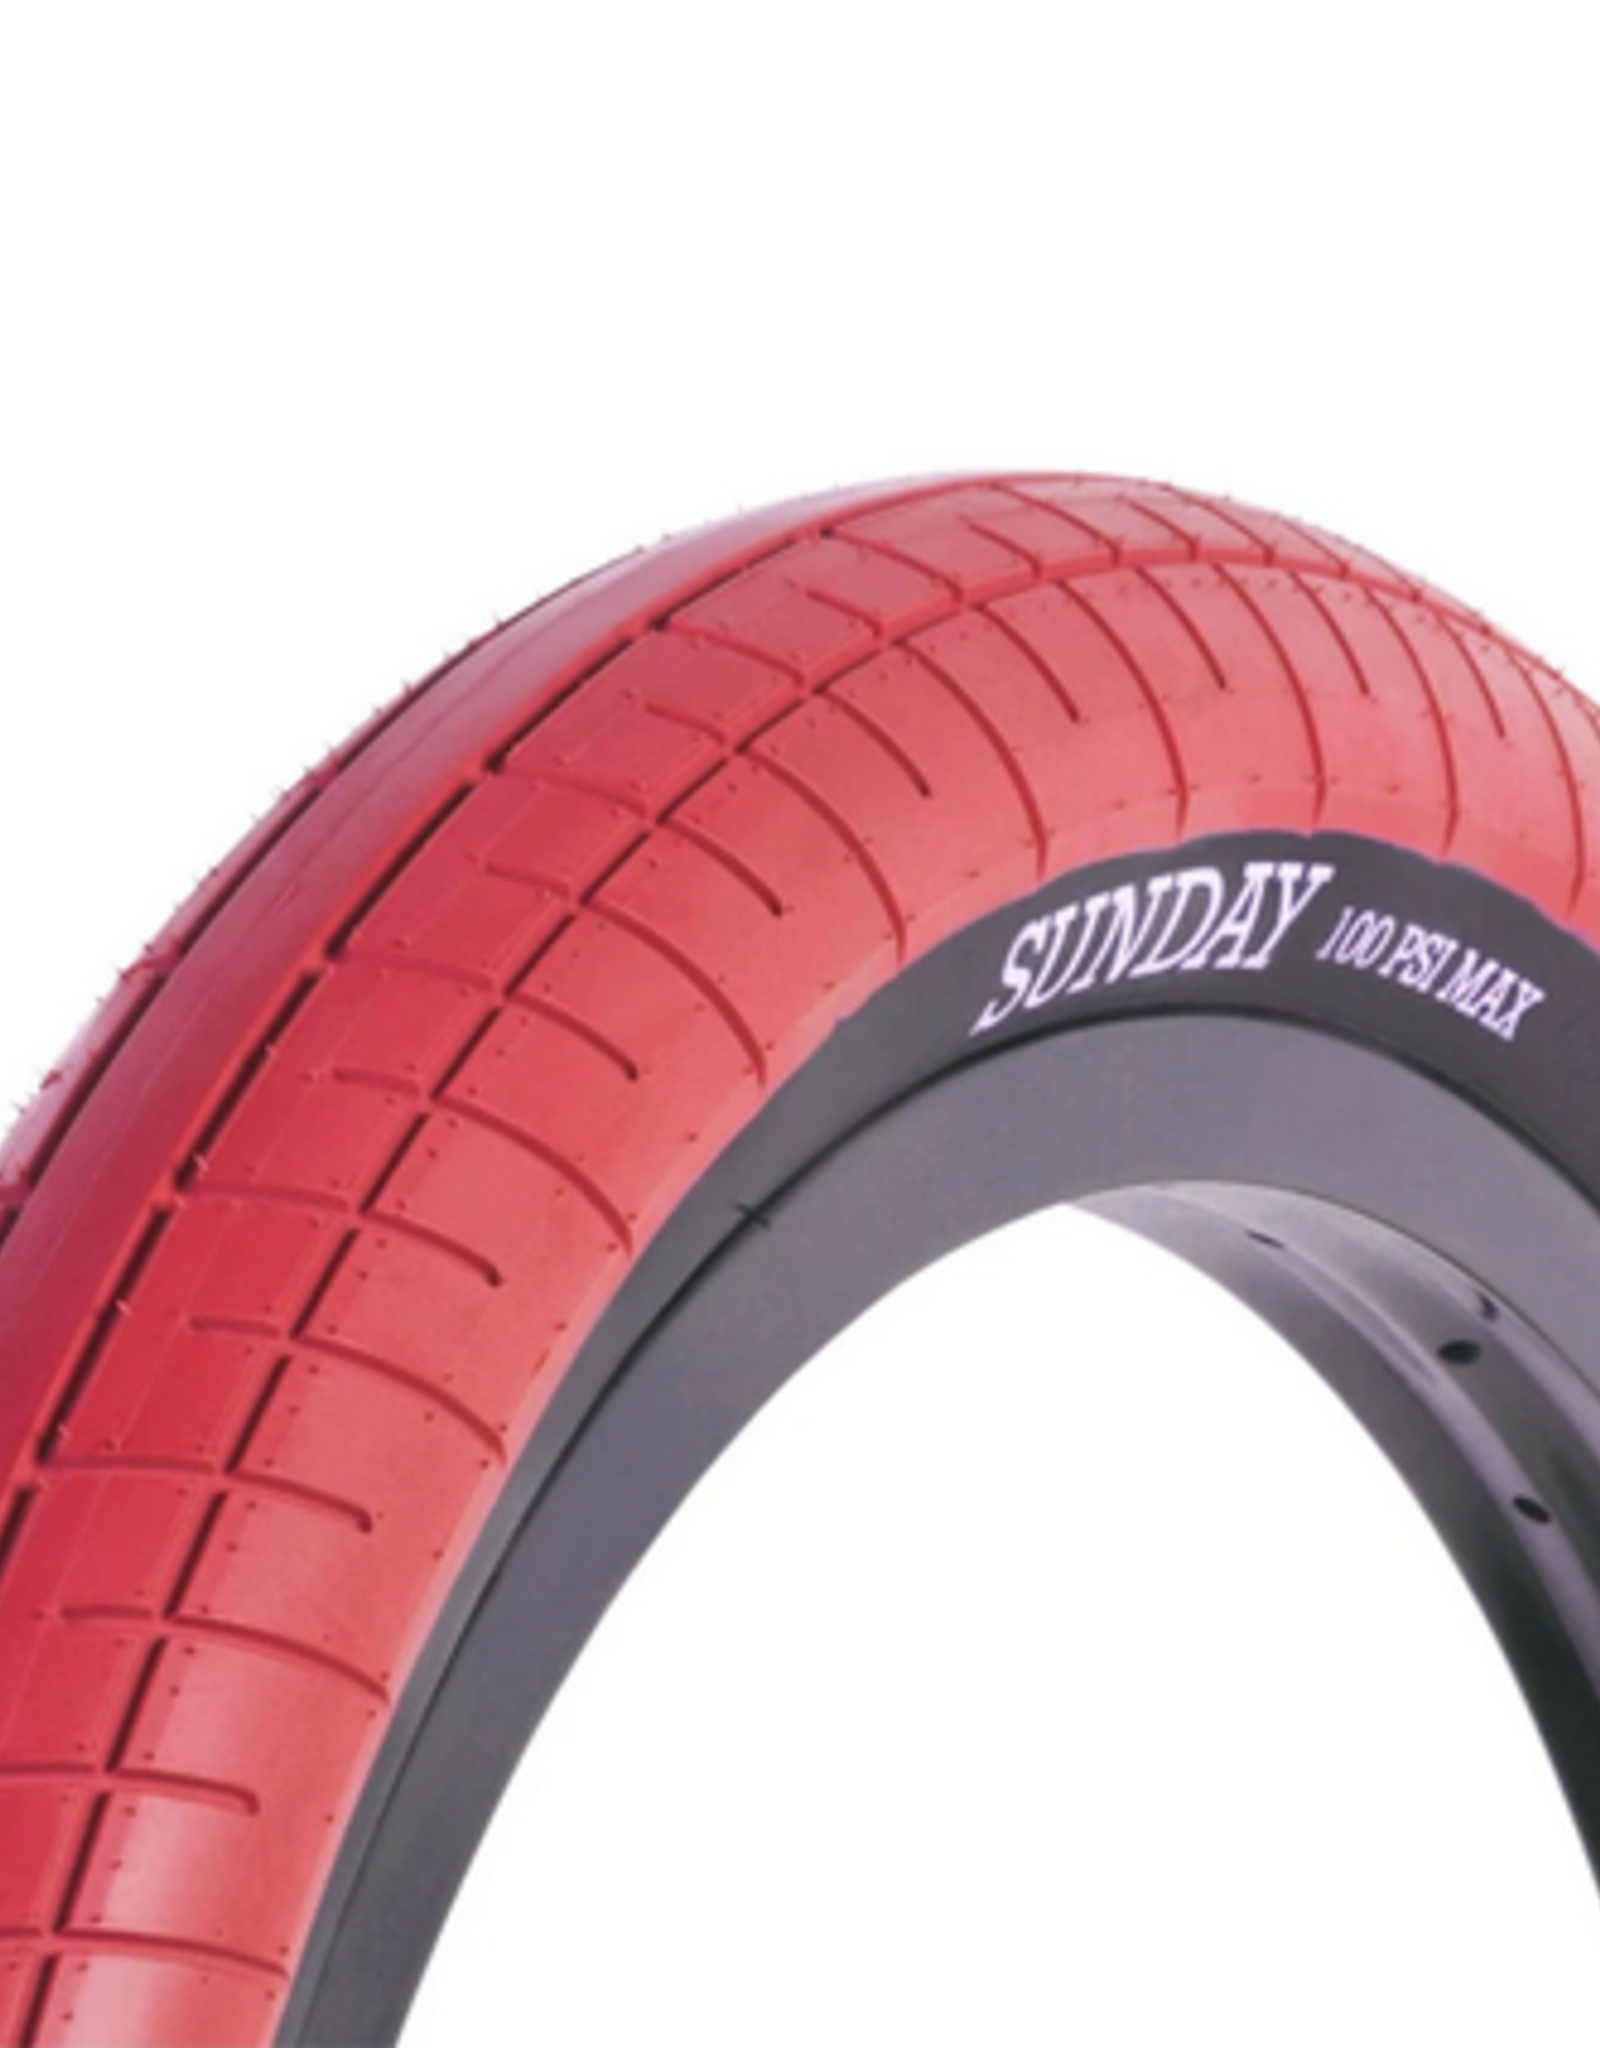 "SUNDAY SUNDAY SEELEY STREET SWEEPER TIRE 20"" 2.40"" WIDE BMX TIRE"